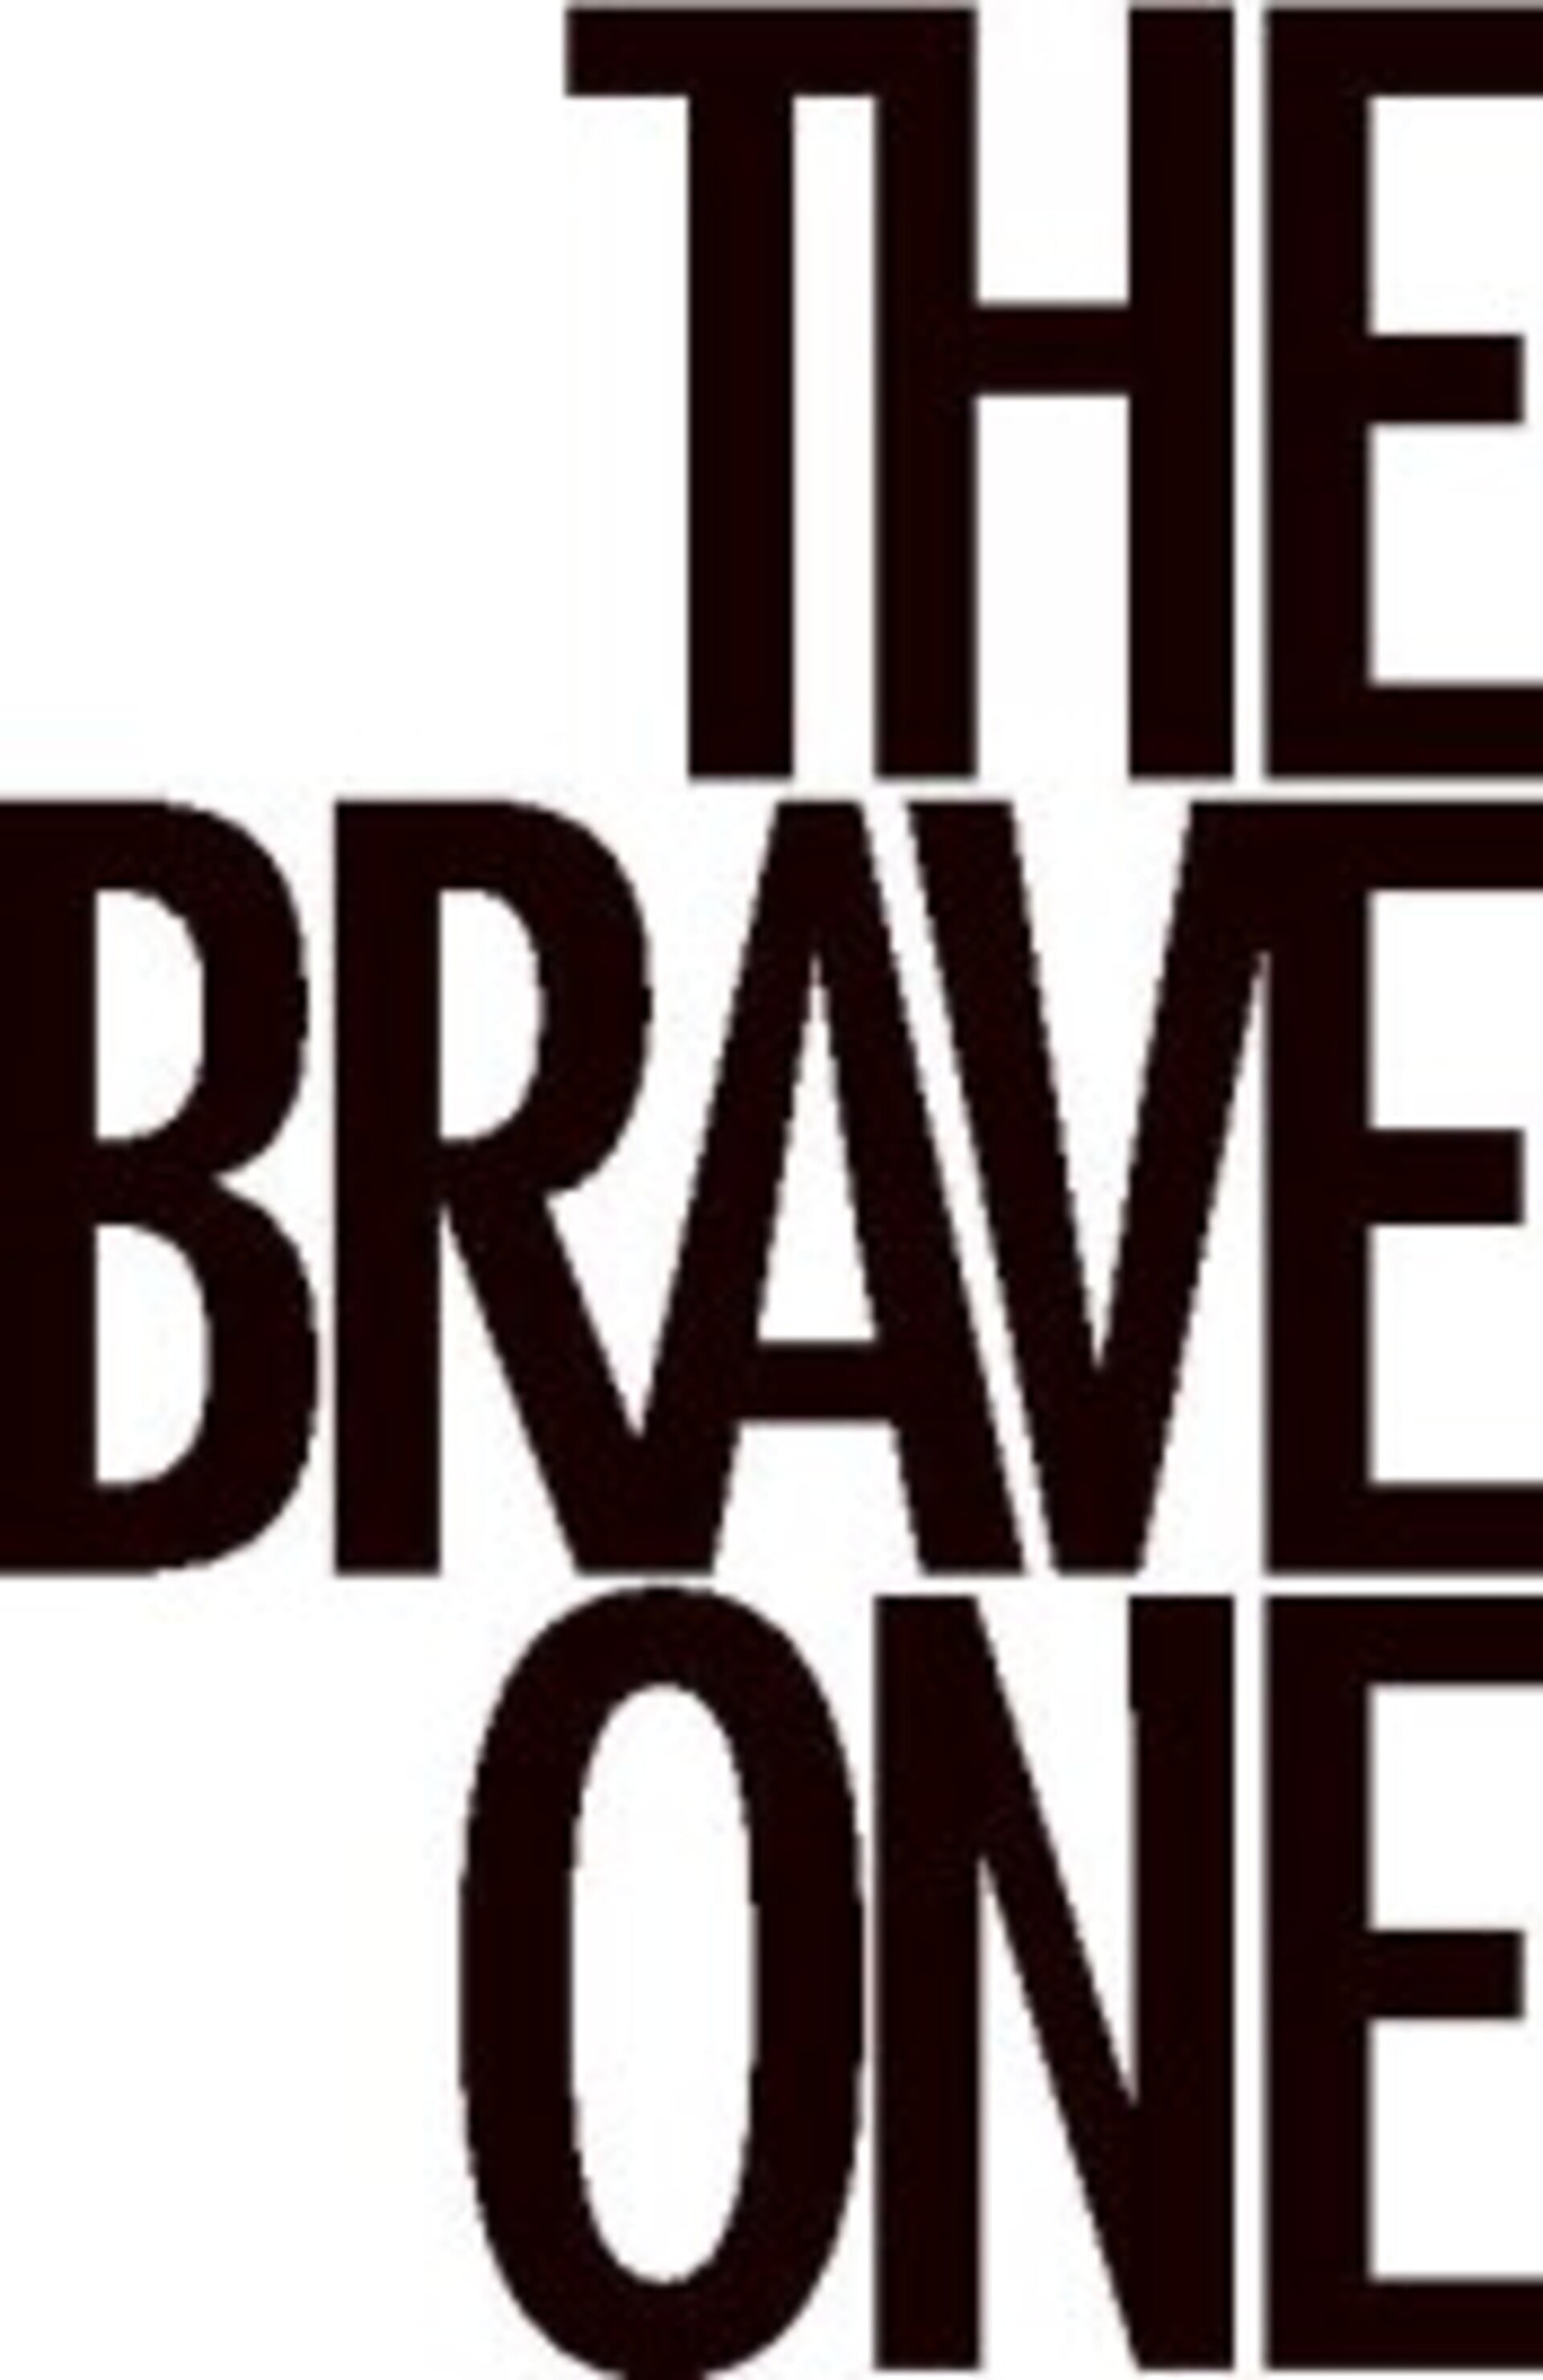 The Brave One - Image 24